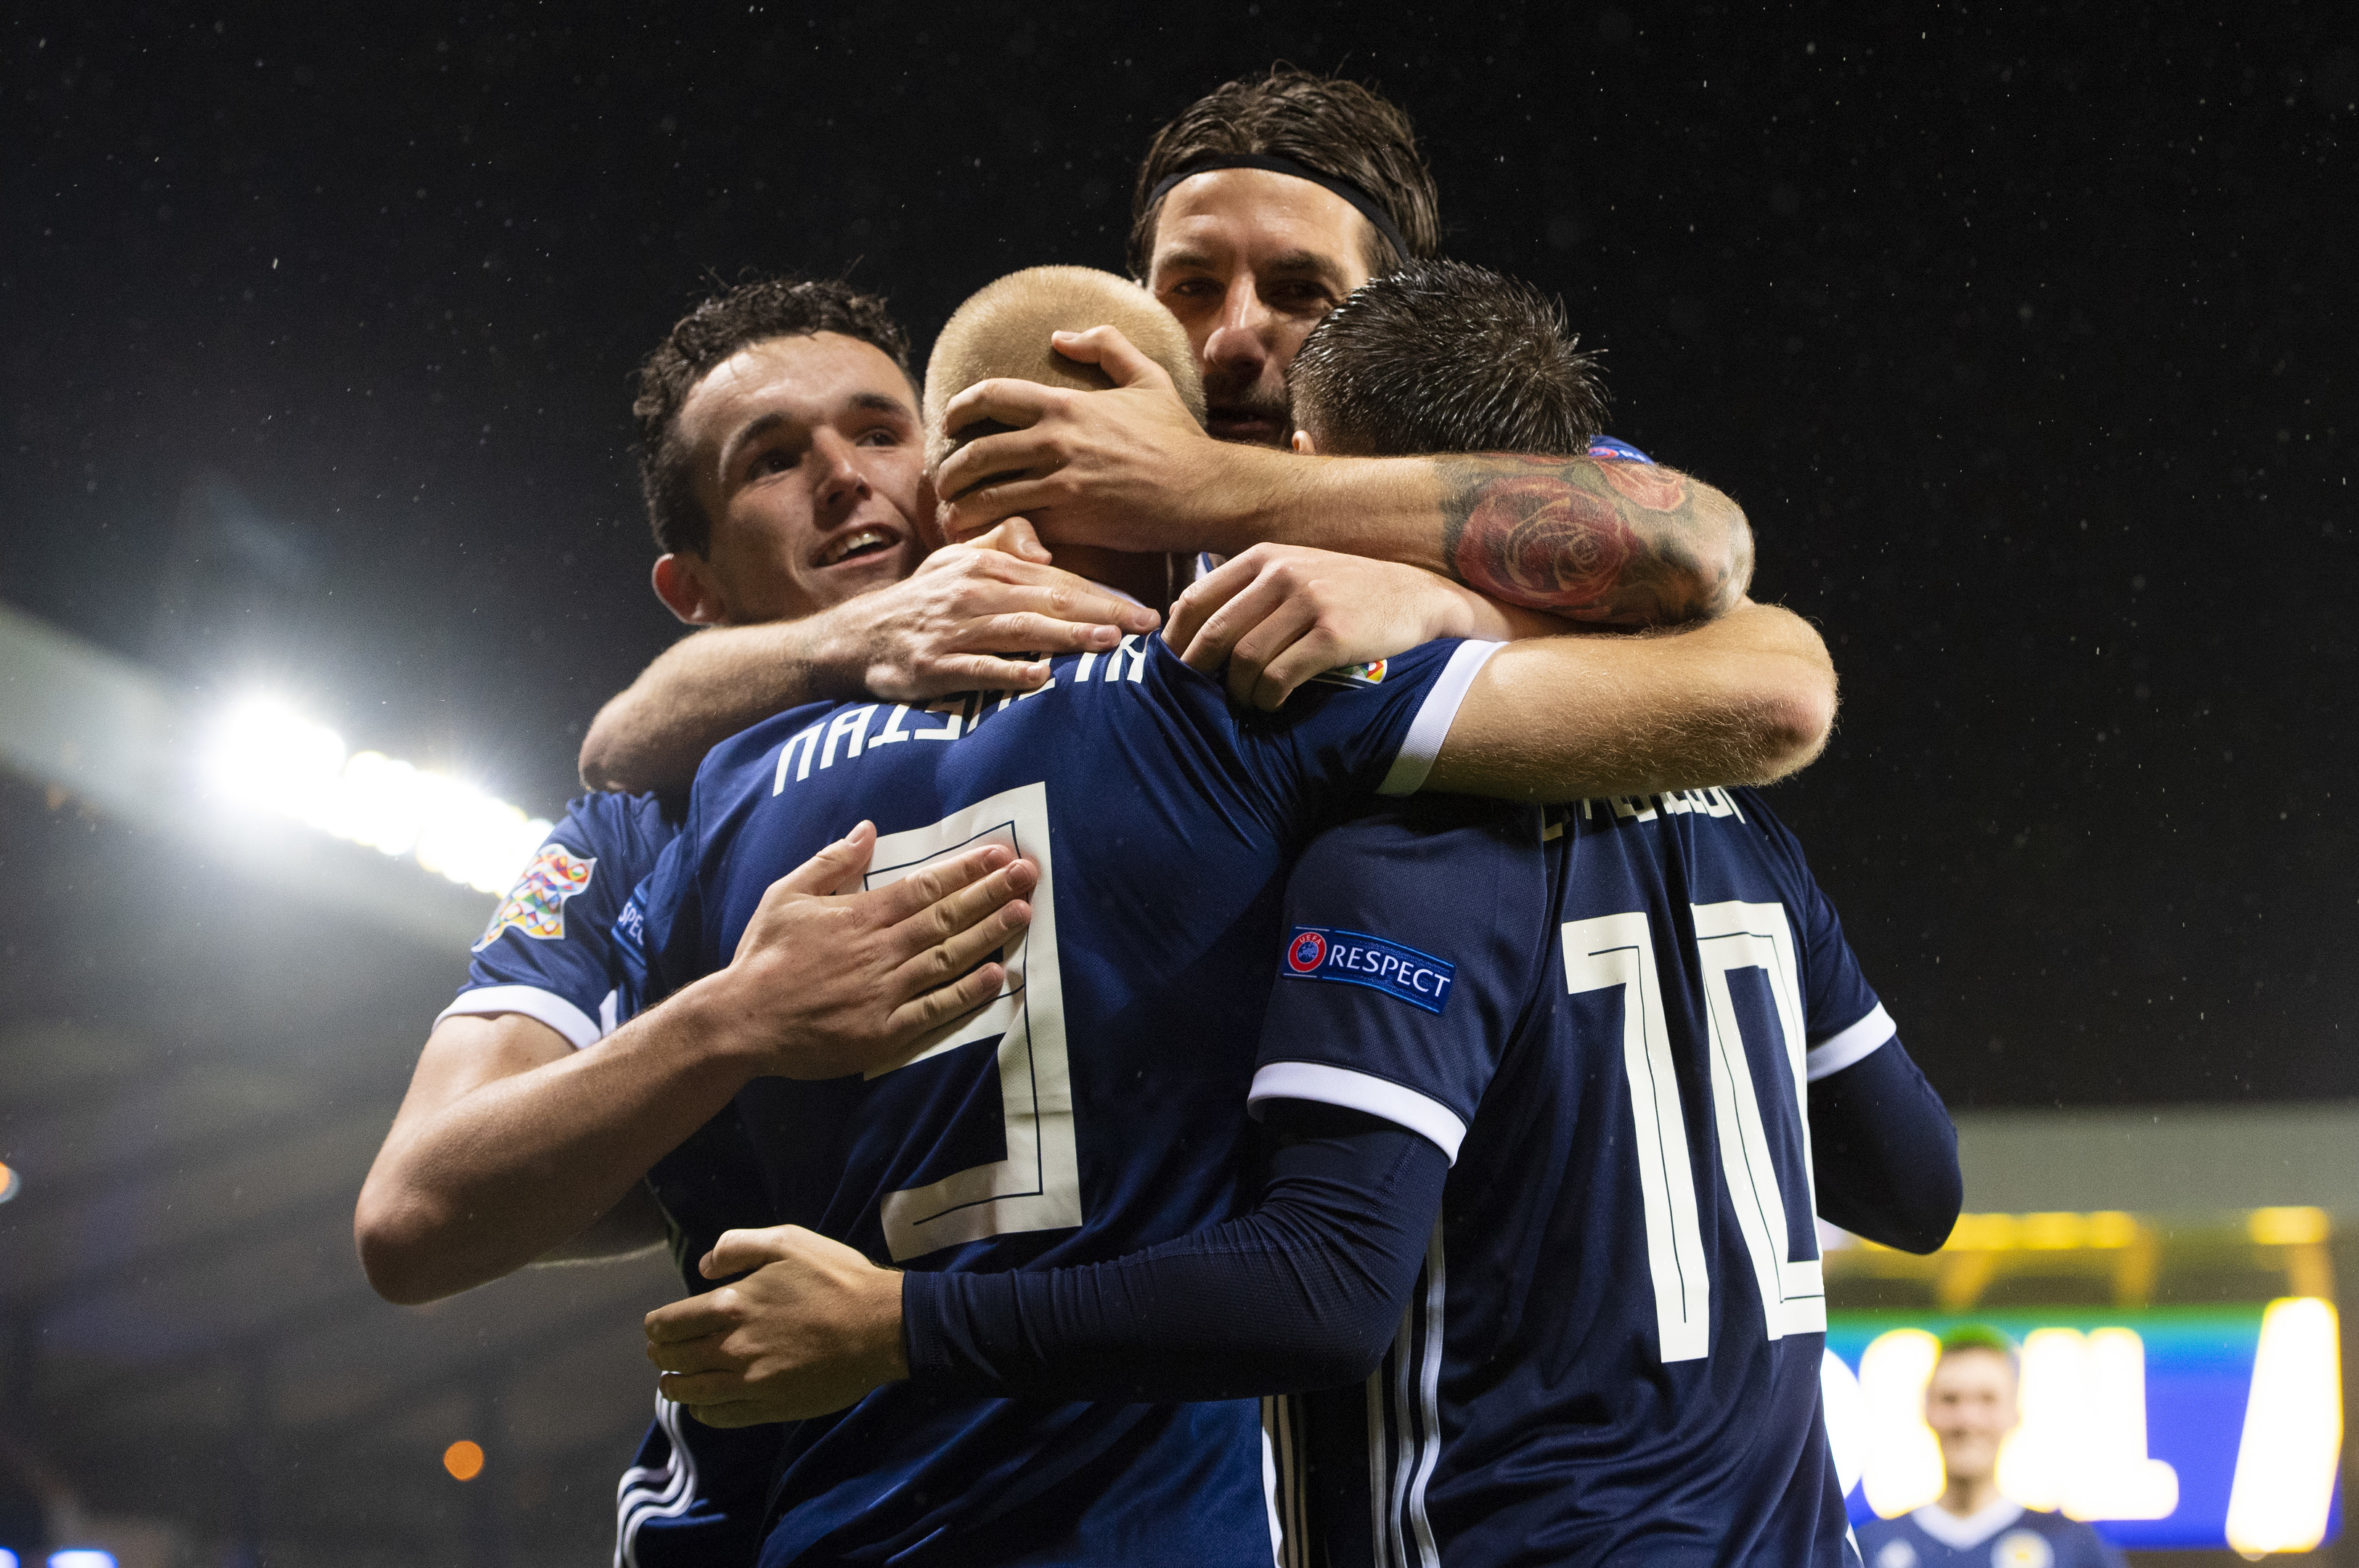 Scotland players celebrate their opening goal.